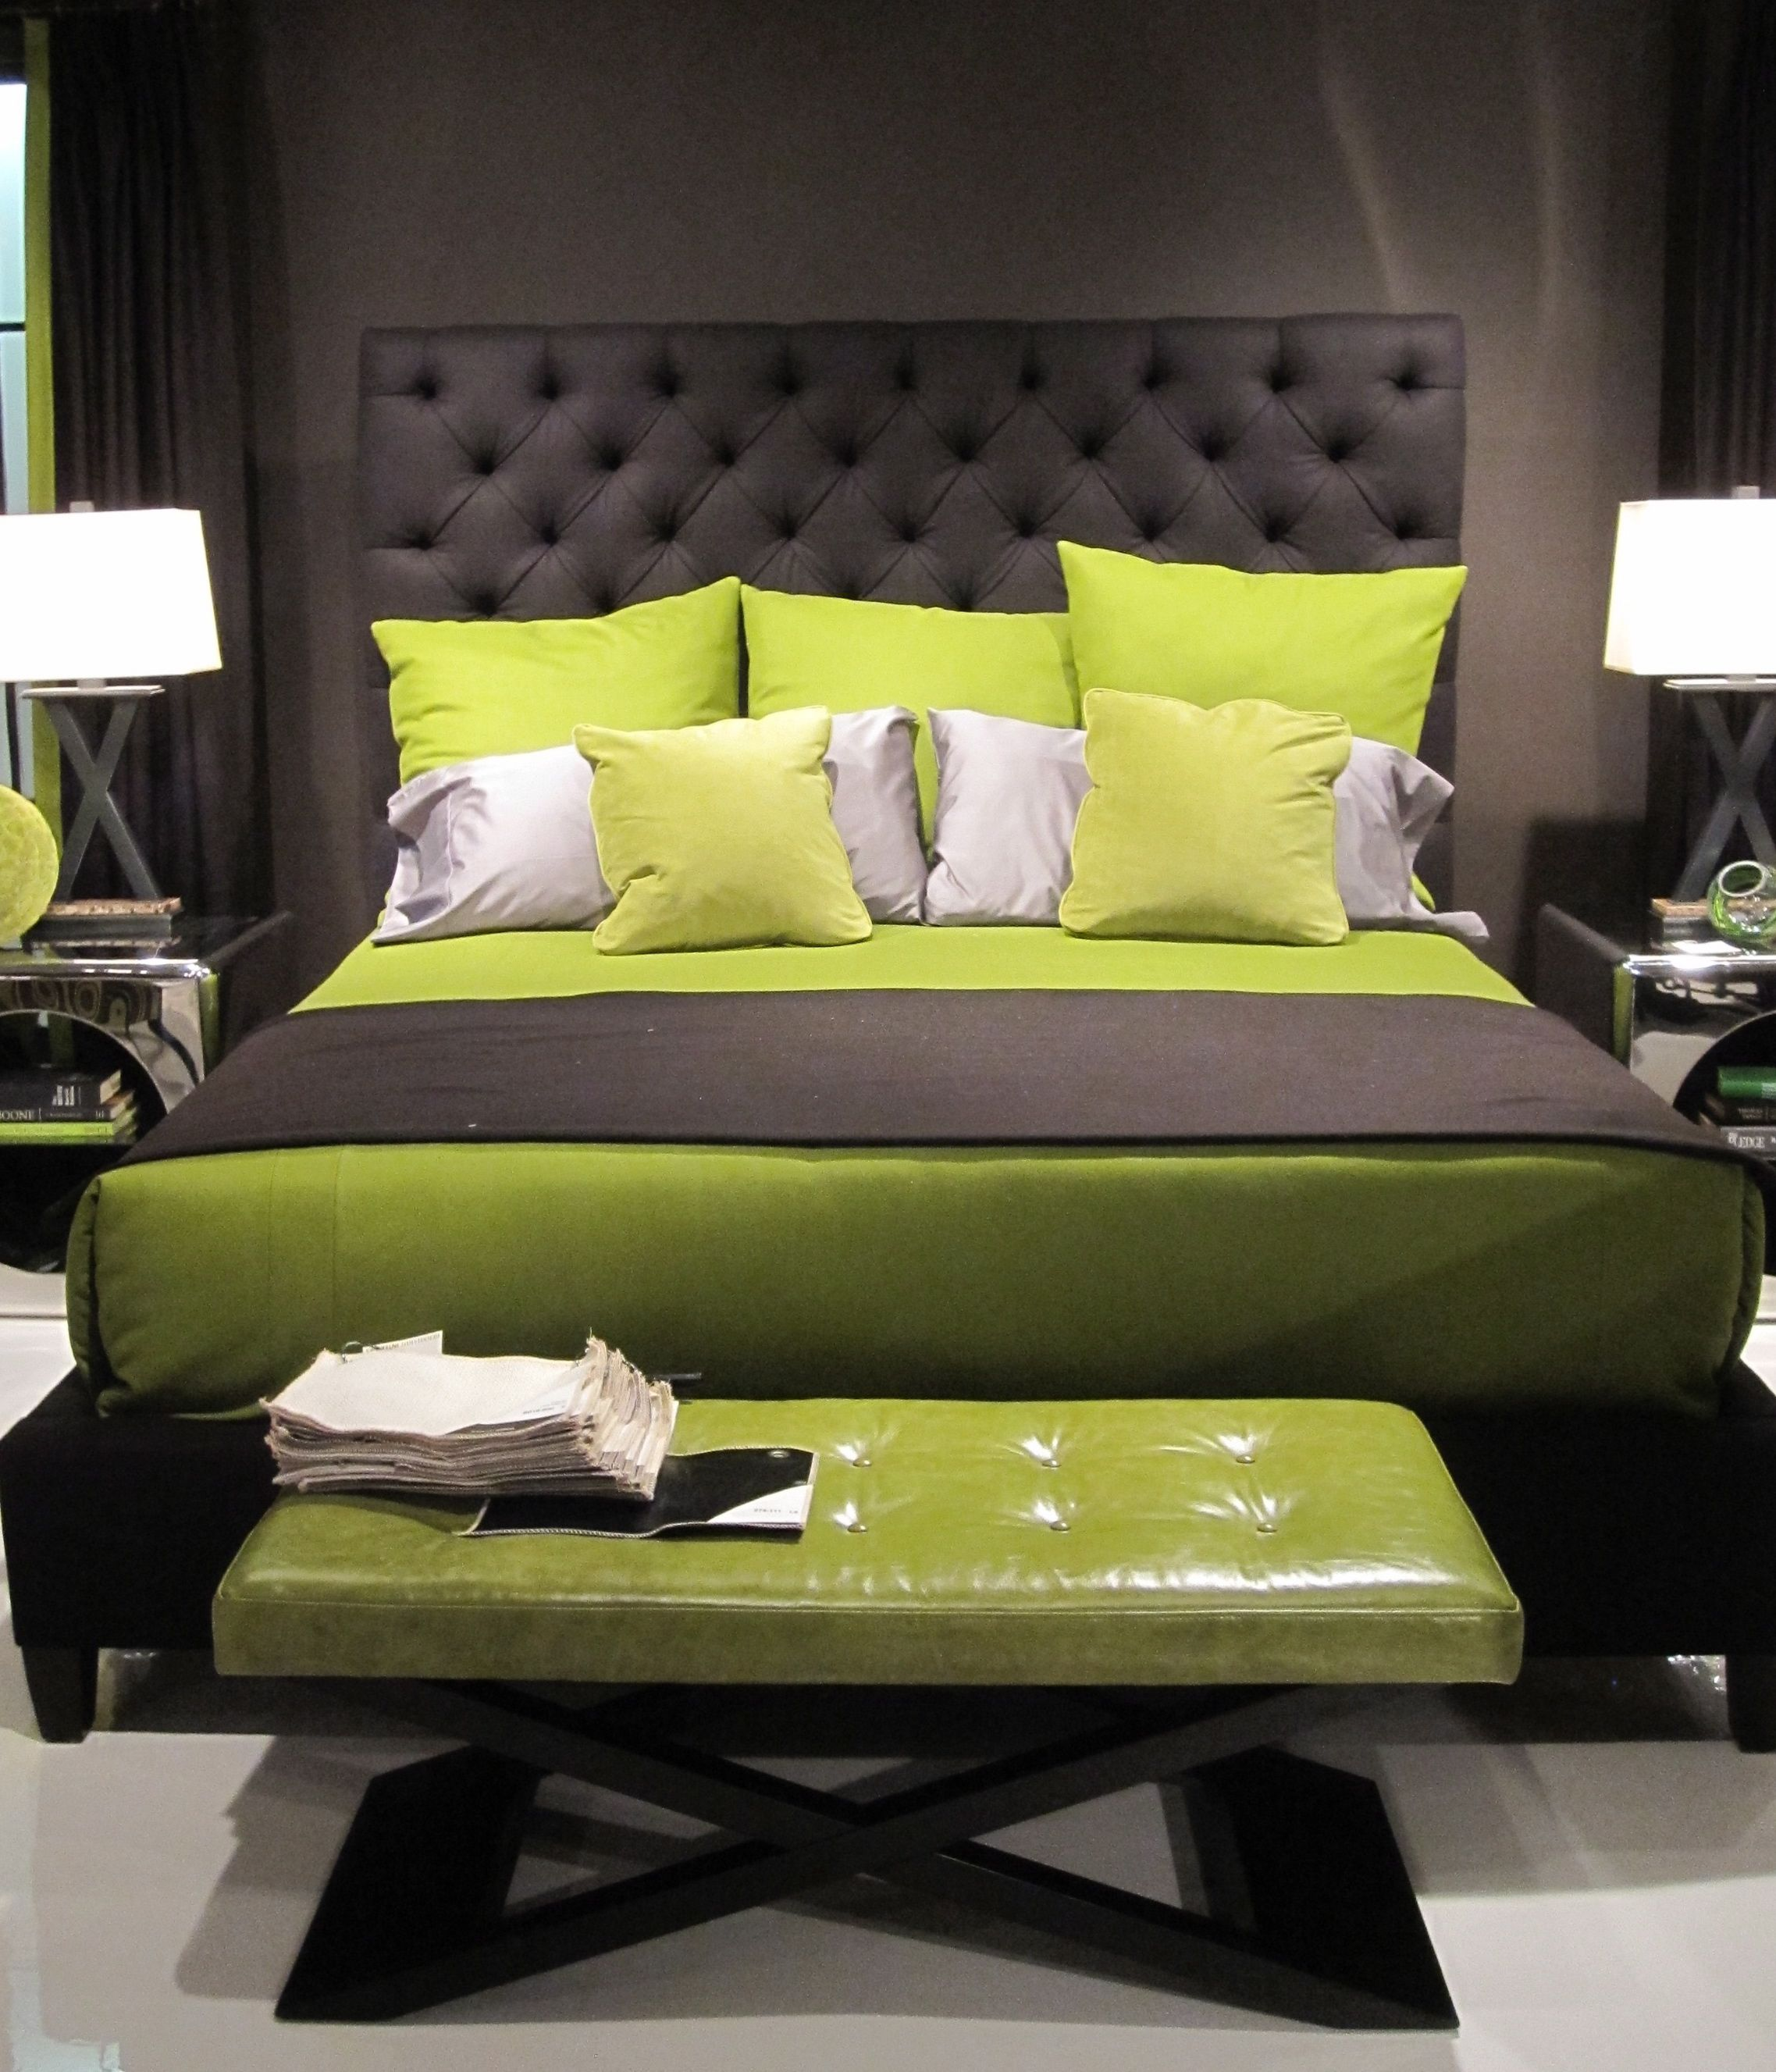 Upholstered Gray Bed Styled With Greens And Stainless Accent Tables